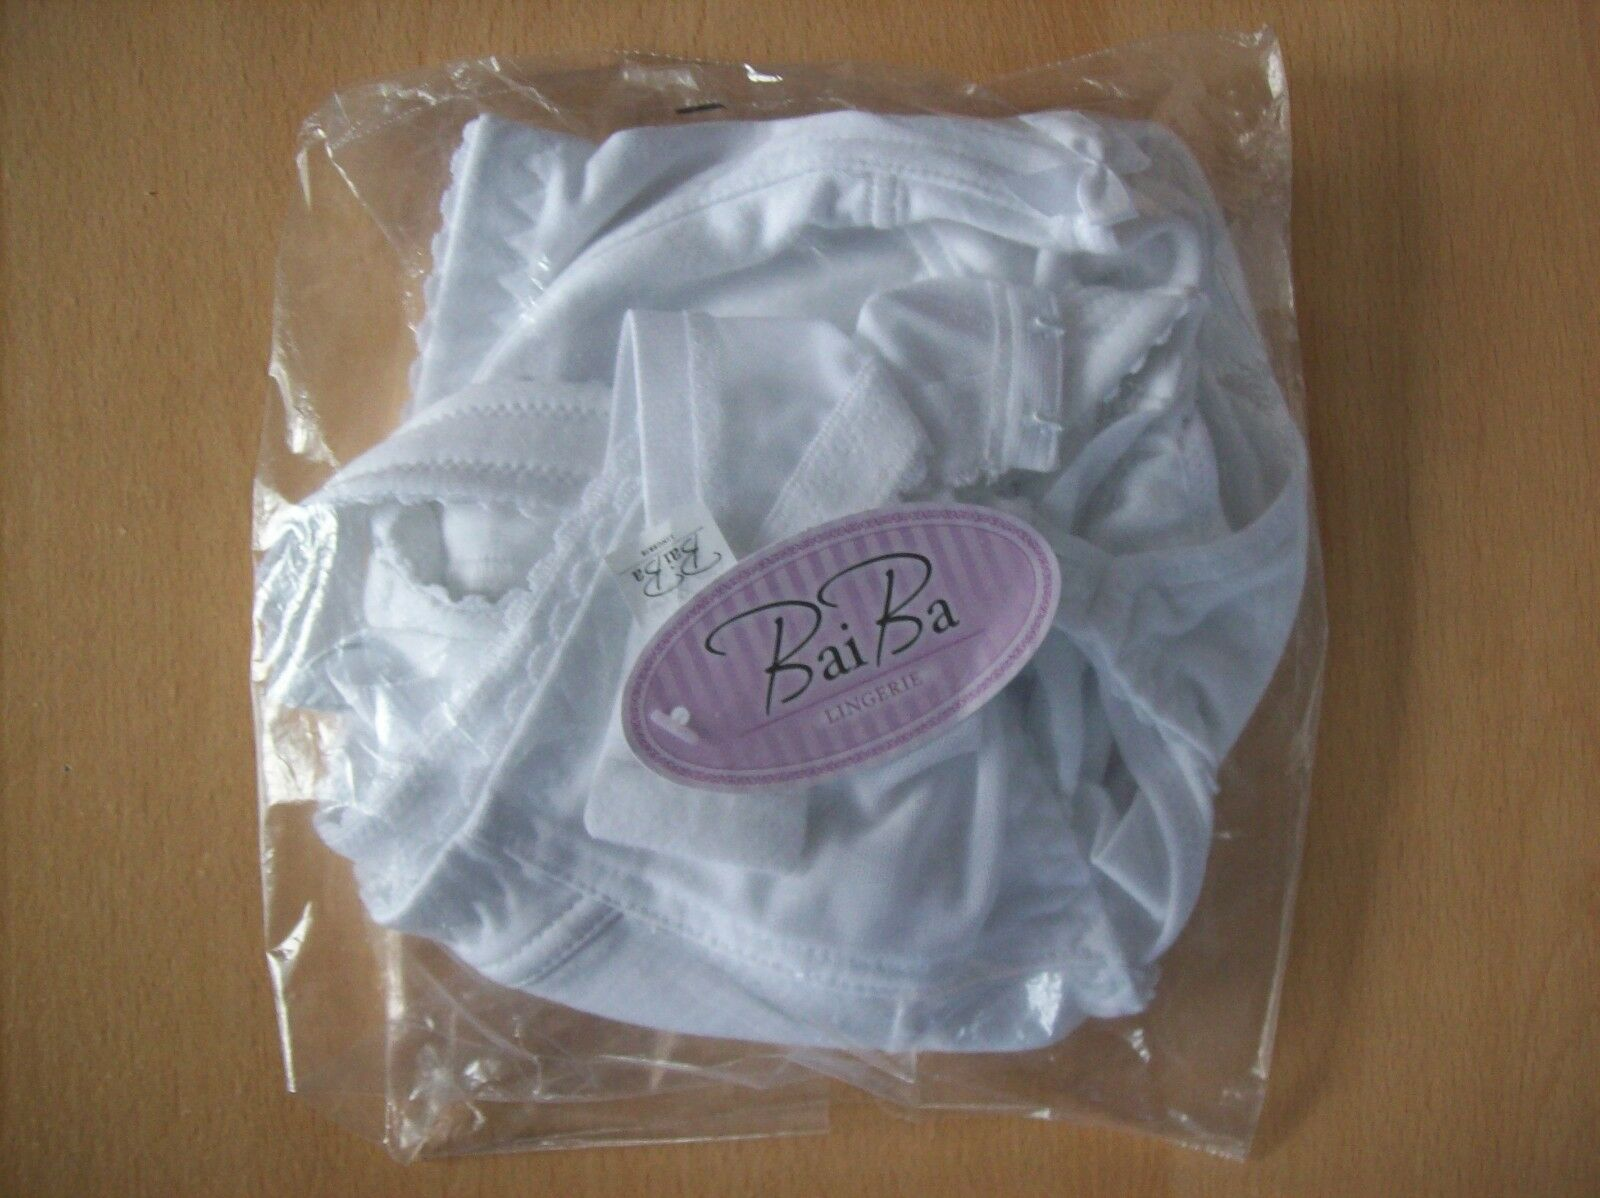 Bra Baiba 608-9 Classic Non Wired Maternity & Nursing Bra White 36 H New + Tags